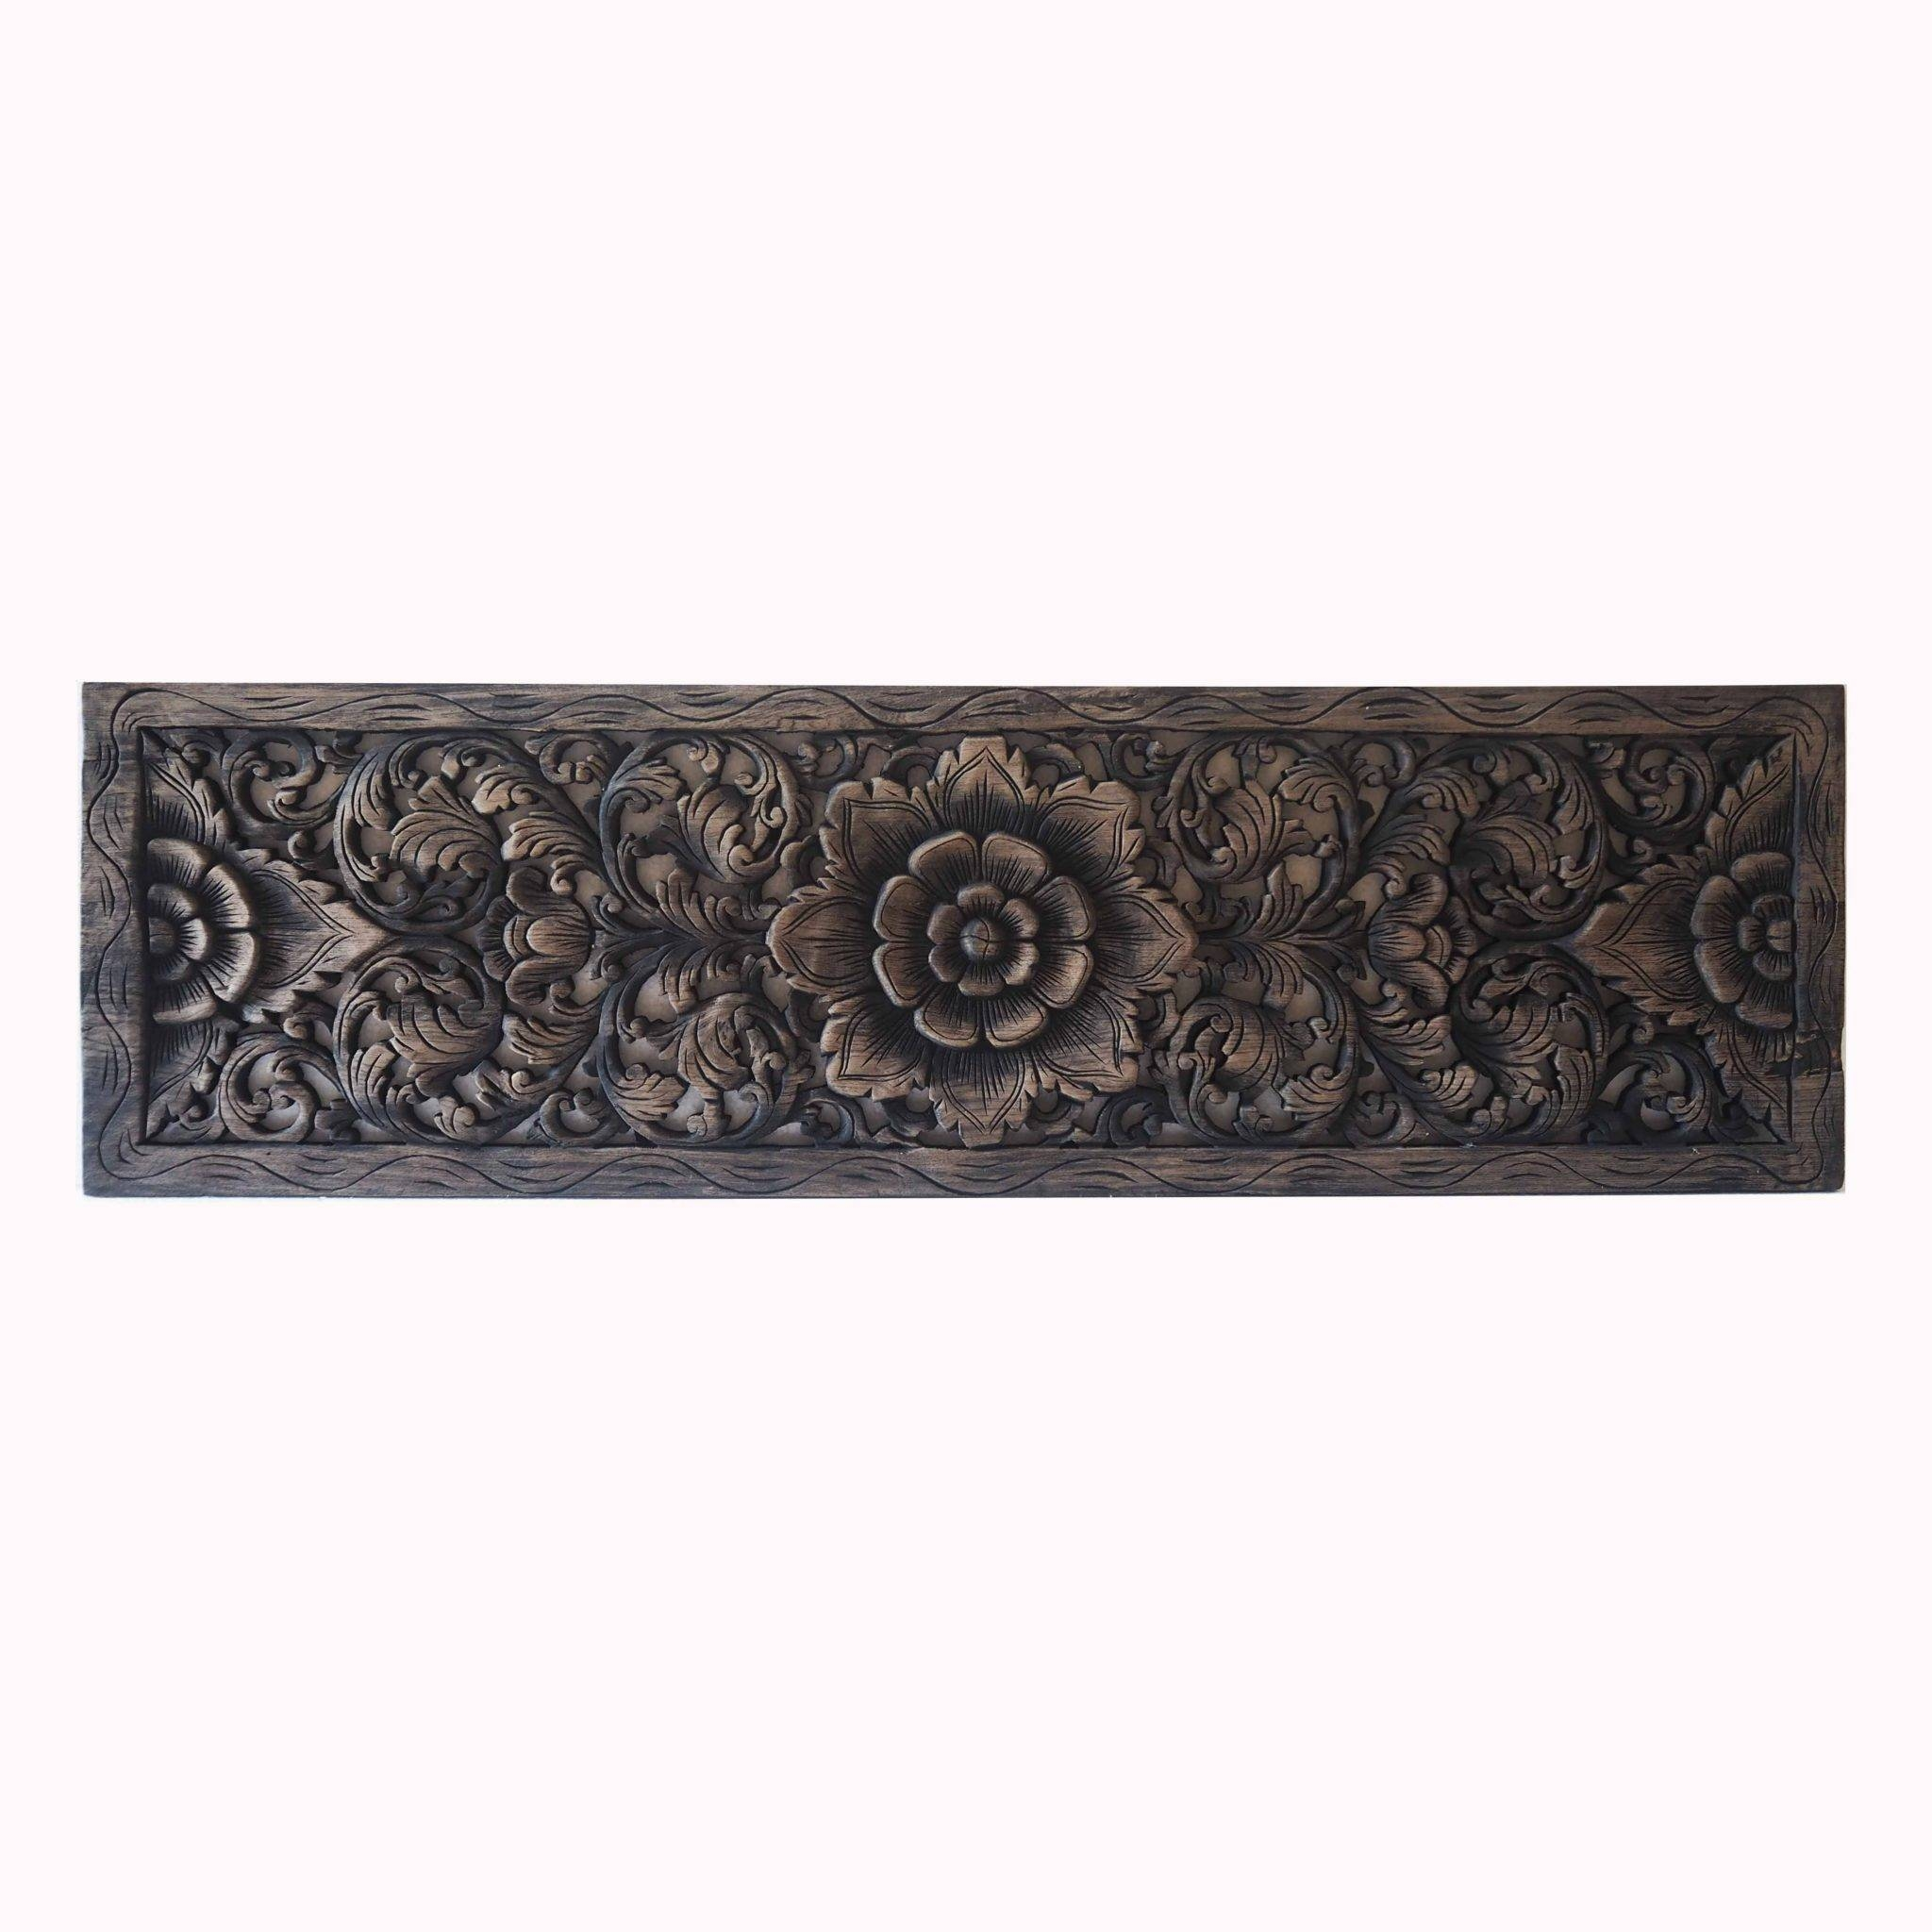 Thai Lotus Wood Carving Wall Art Panel – Siam Sawadee Throughout Recent Asian Wall Art Panels (View 9 of 20)